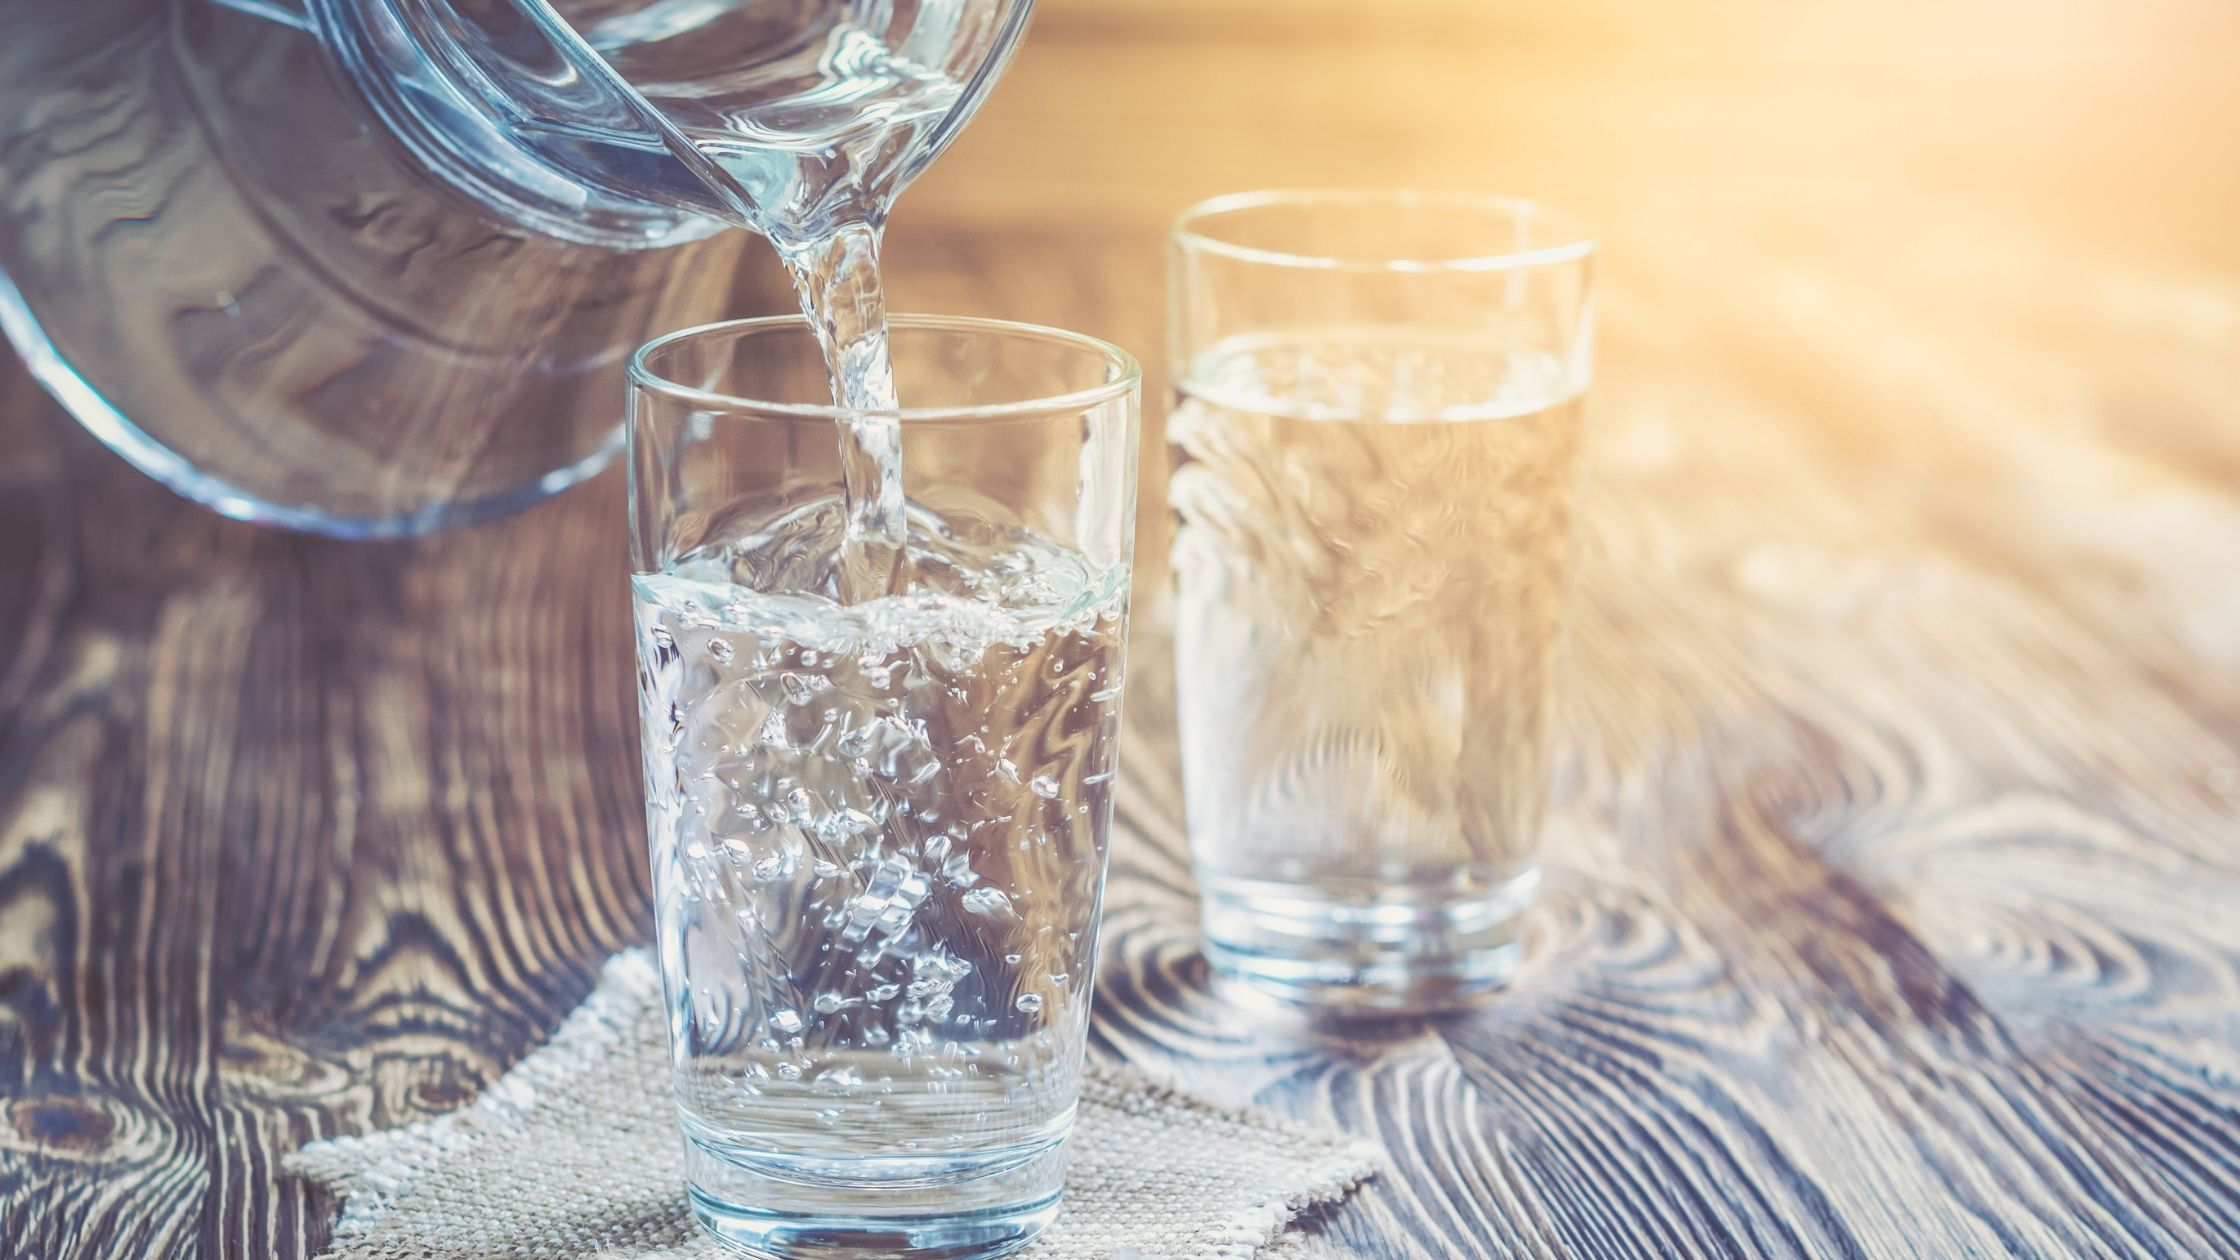 Dehydration and hyponatremia For Keto Leg Cramps